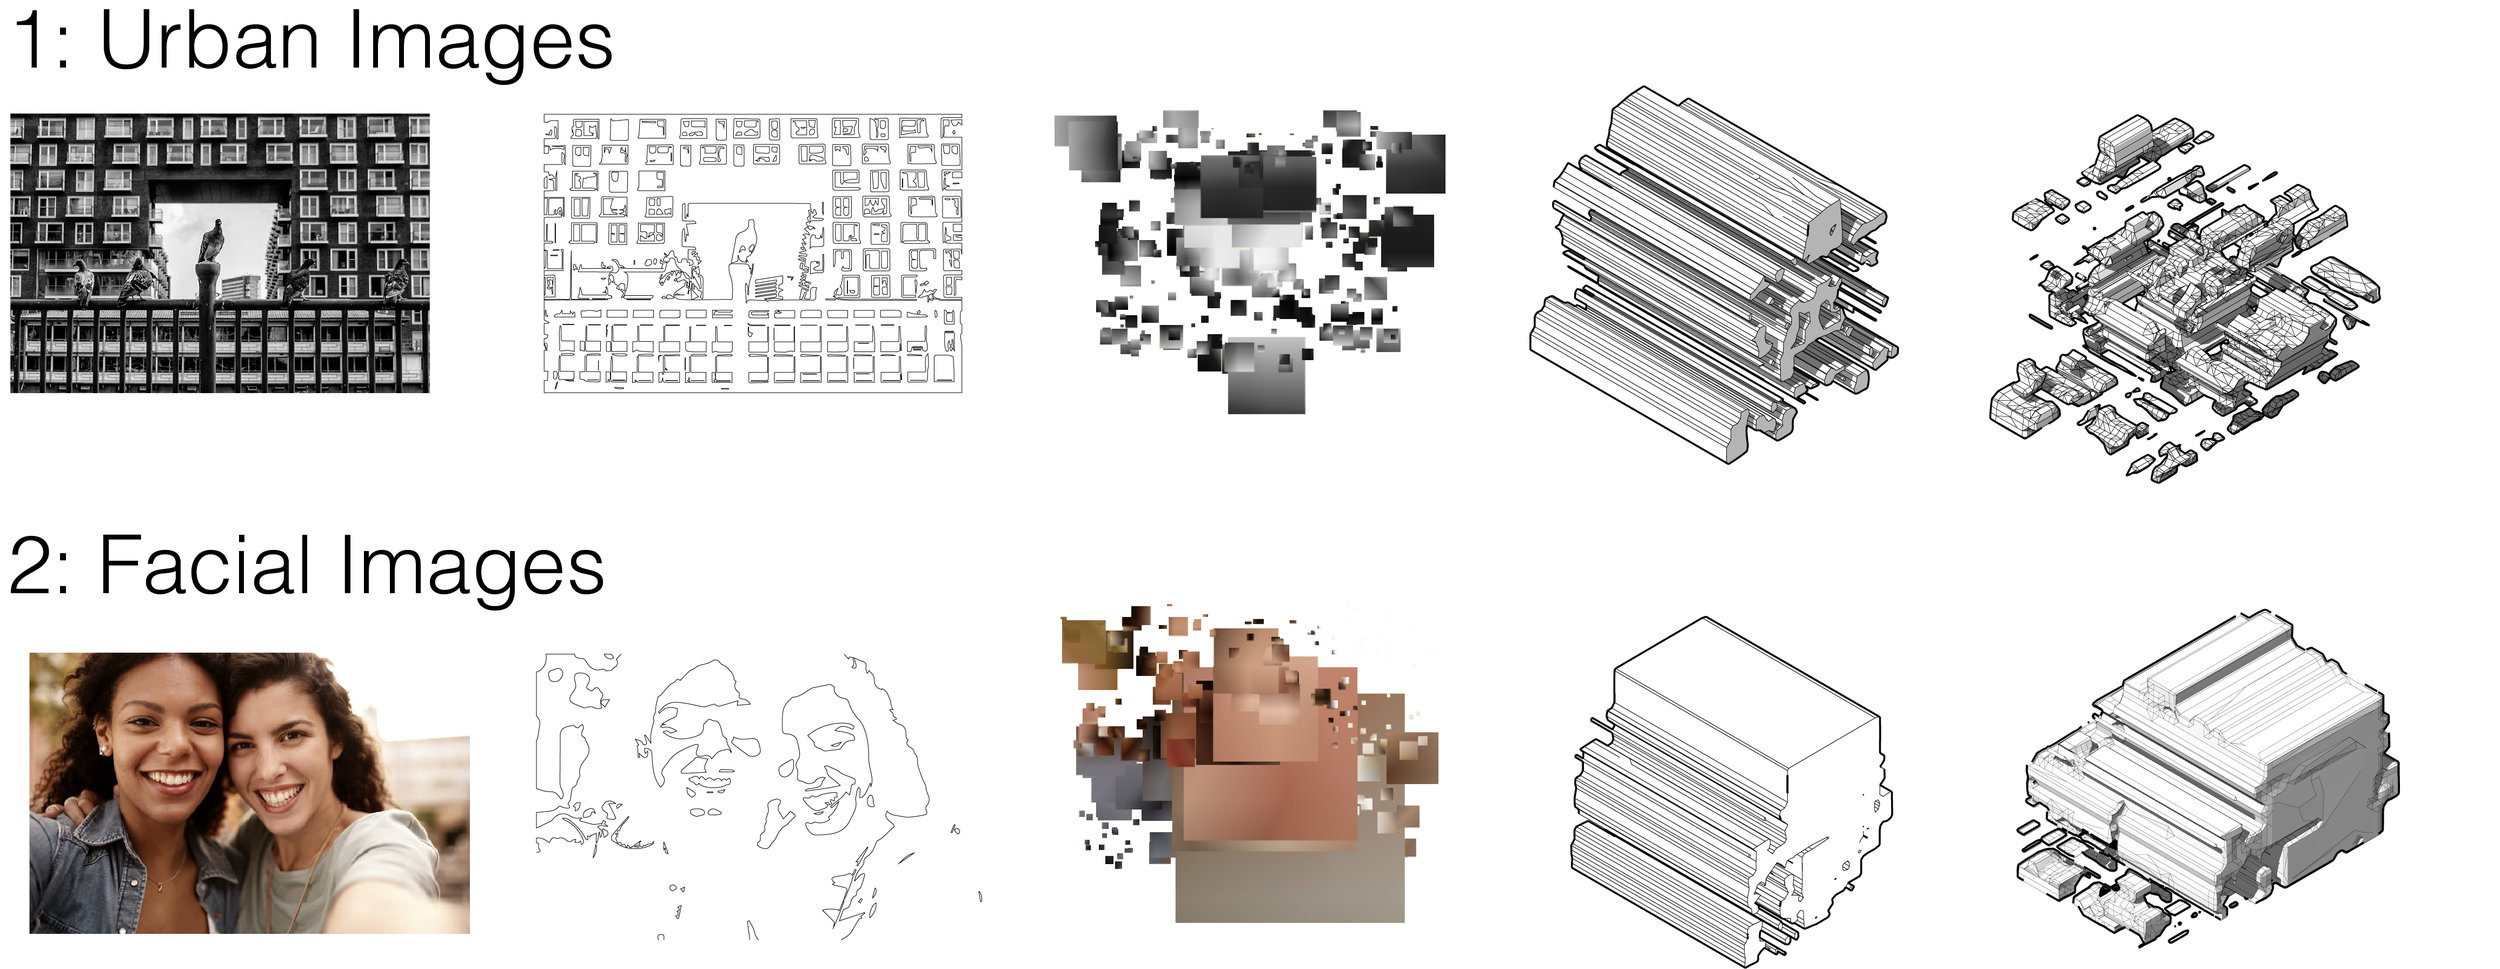 The formal generation process involves reading typical human imagery through edge-detection algorithms, rearranging and scaling individual image pixels based on these outlines, and then projecting and intersecting the transformed pixels as 3d voxels across multiple planes. This process ultimately reinterprets aesthetic image qualities into architectural typologies such as form, material, and program, allowing curation of the process towards certain architectural performances.